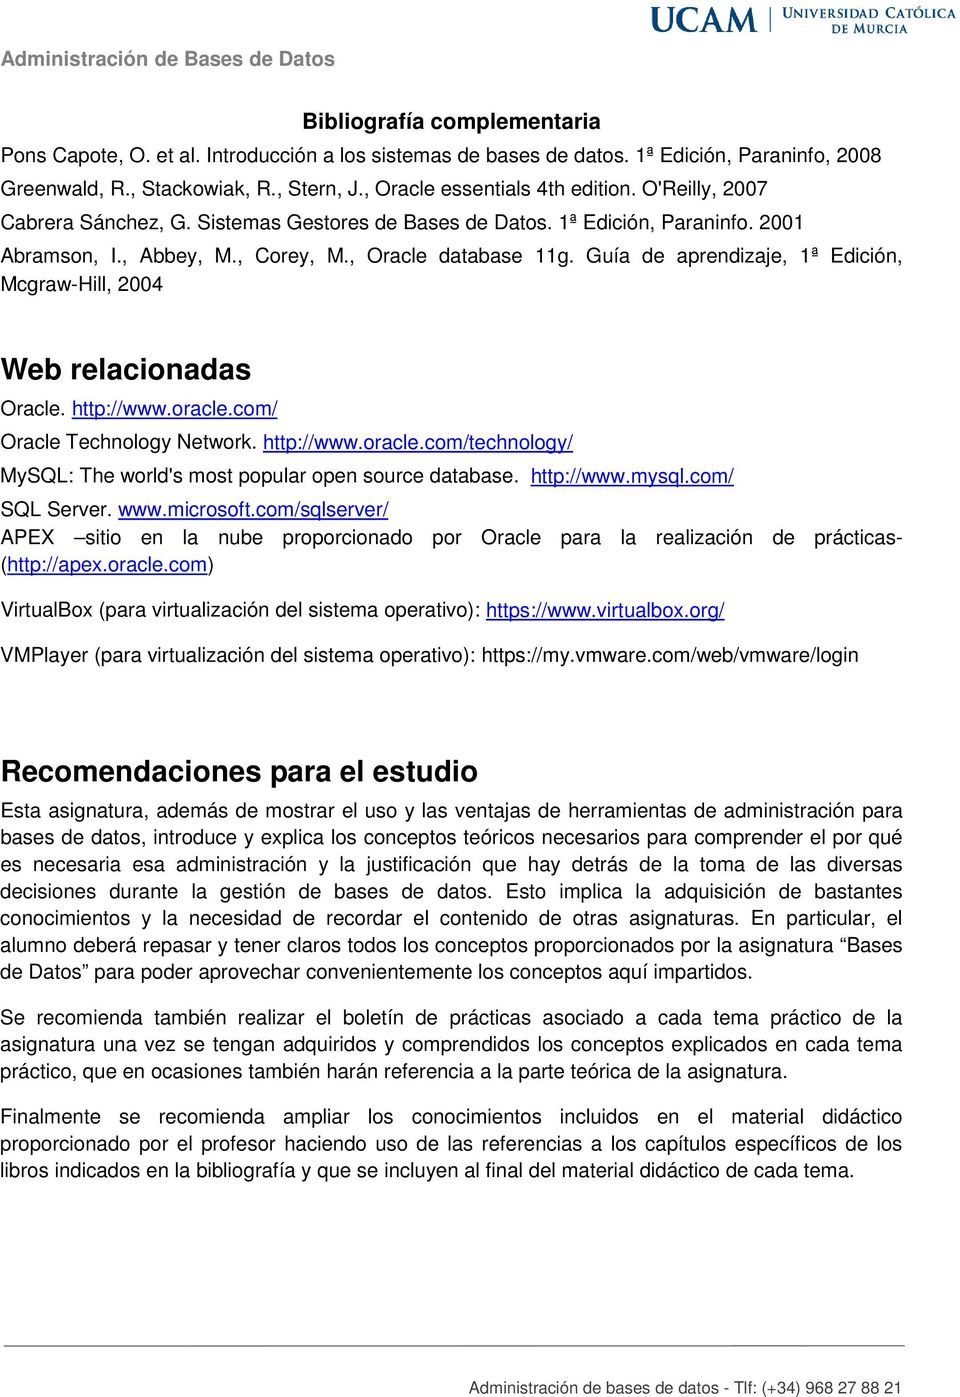 Guía de aprendizaje, 1ª Edición, Mcgraw-Hill, 2004 Web relacionadas Oracle. http://www.oracle.com/ Oracle Technology Network. http://www.oracle.com/technology/ MySQL: The world's most popular open source database.